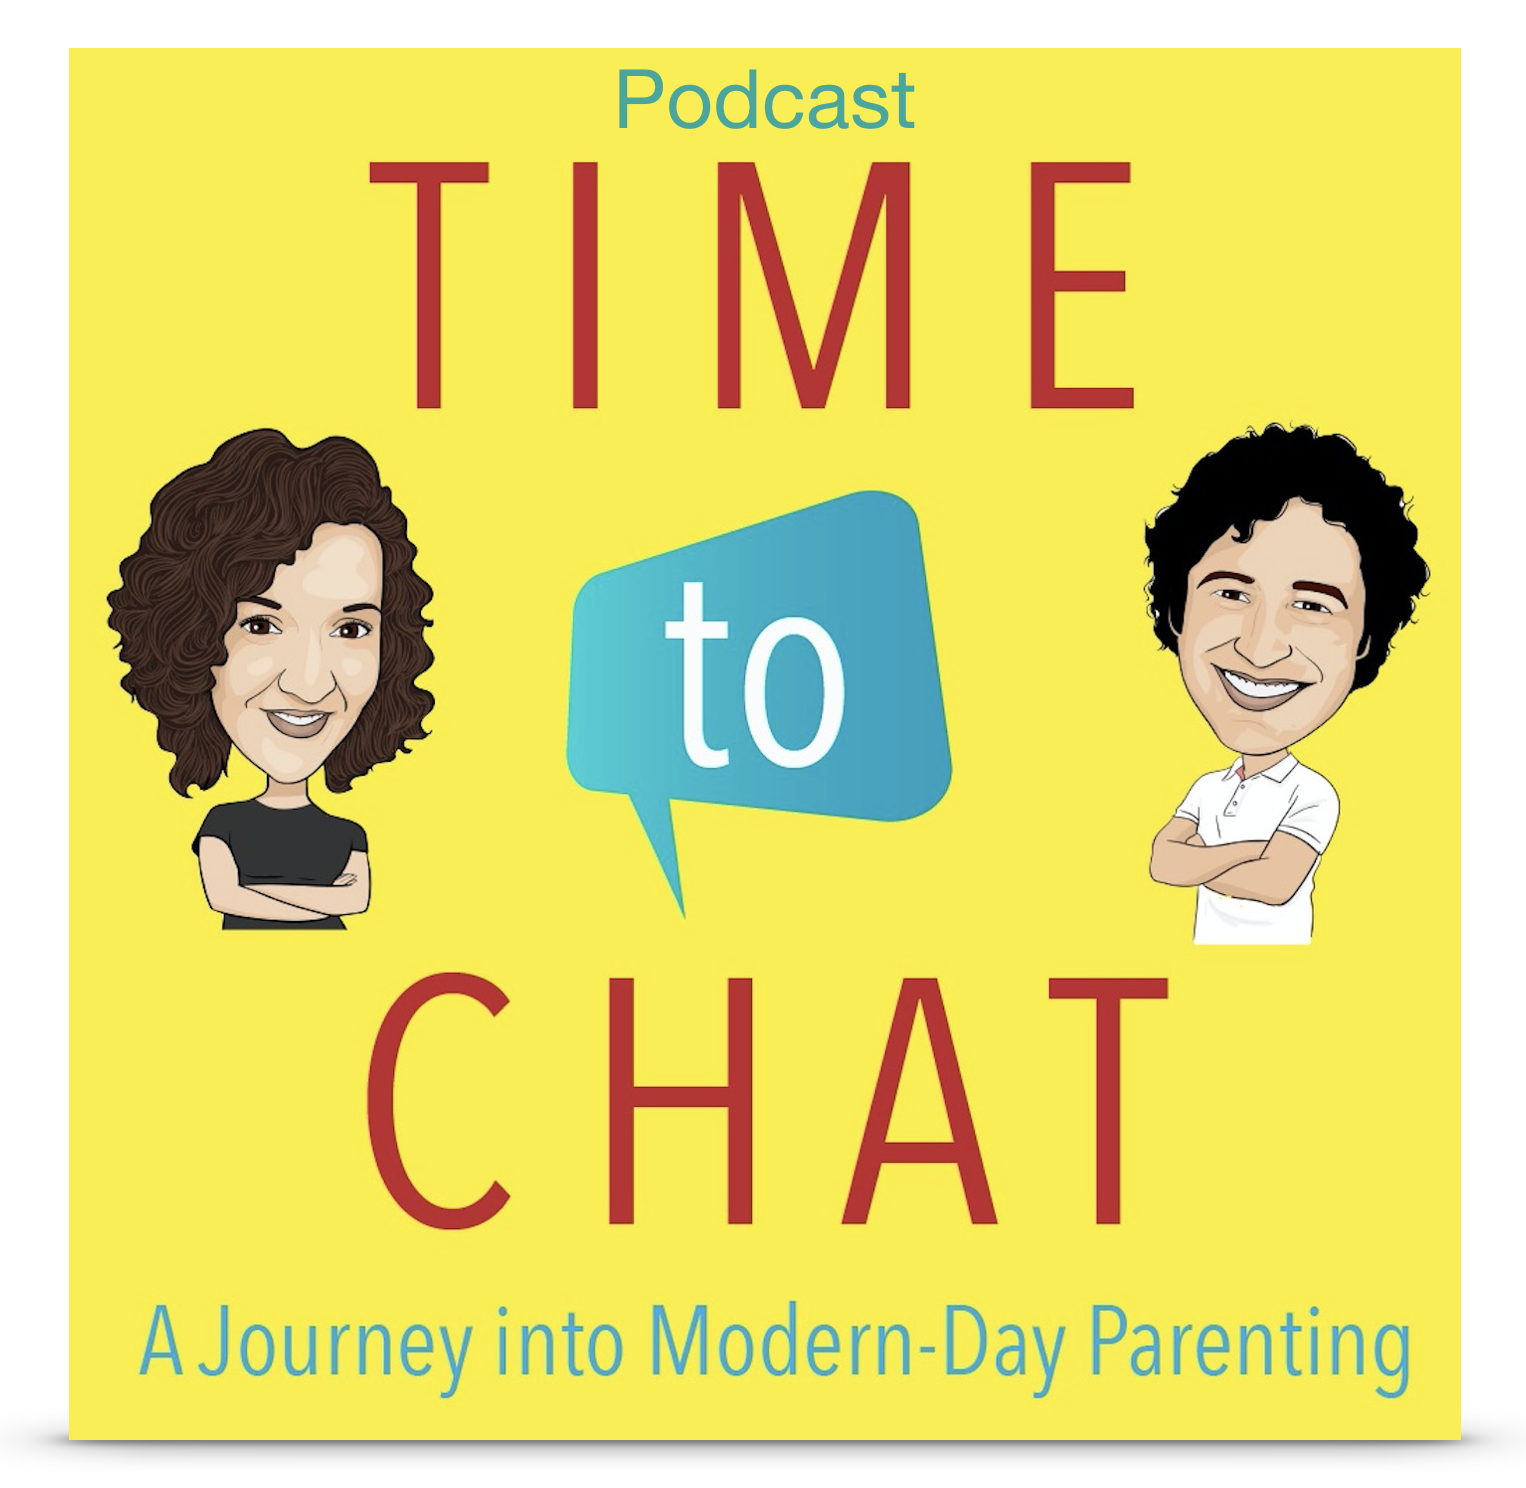 A growing library of podcasts to help with raising children in the modern age.